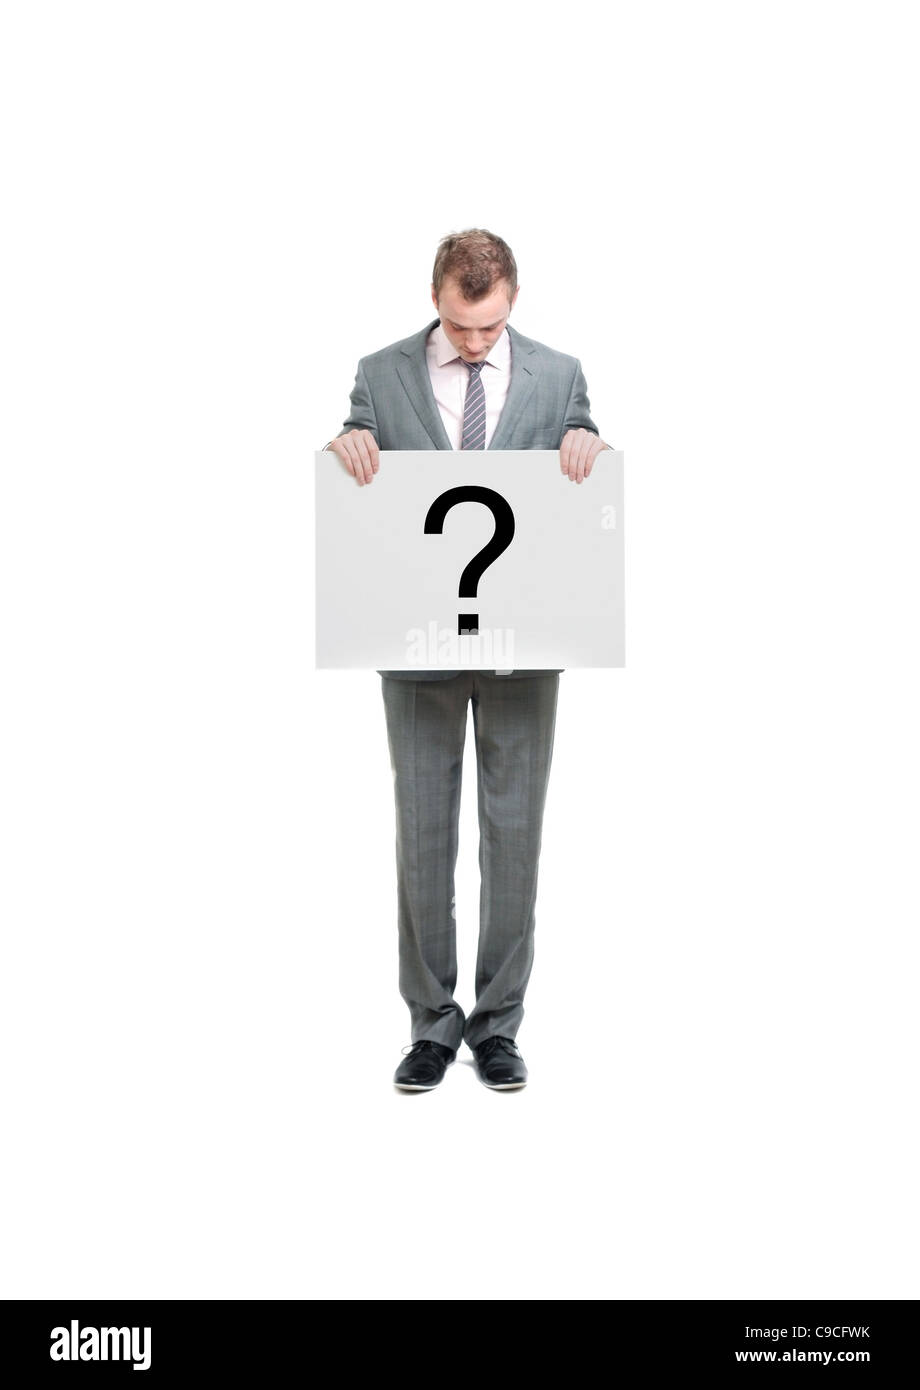 A business man holding a question mark - Stock Image